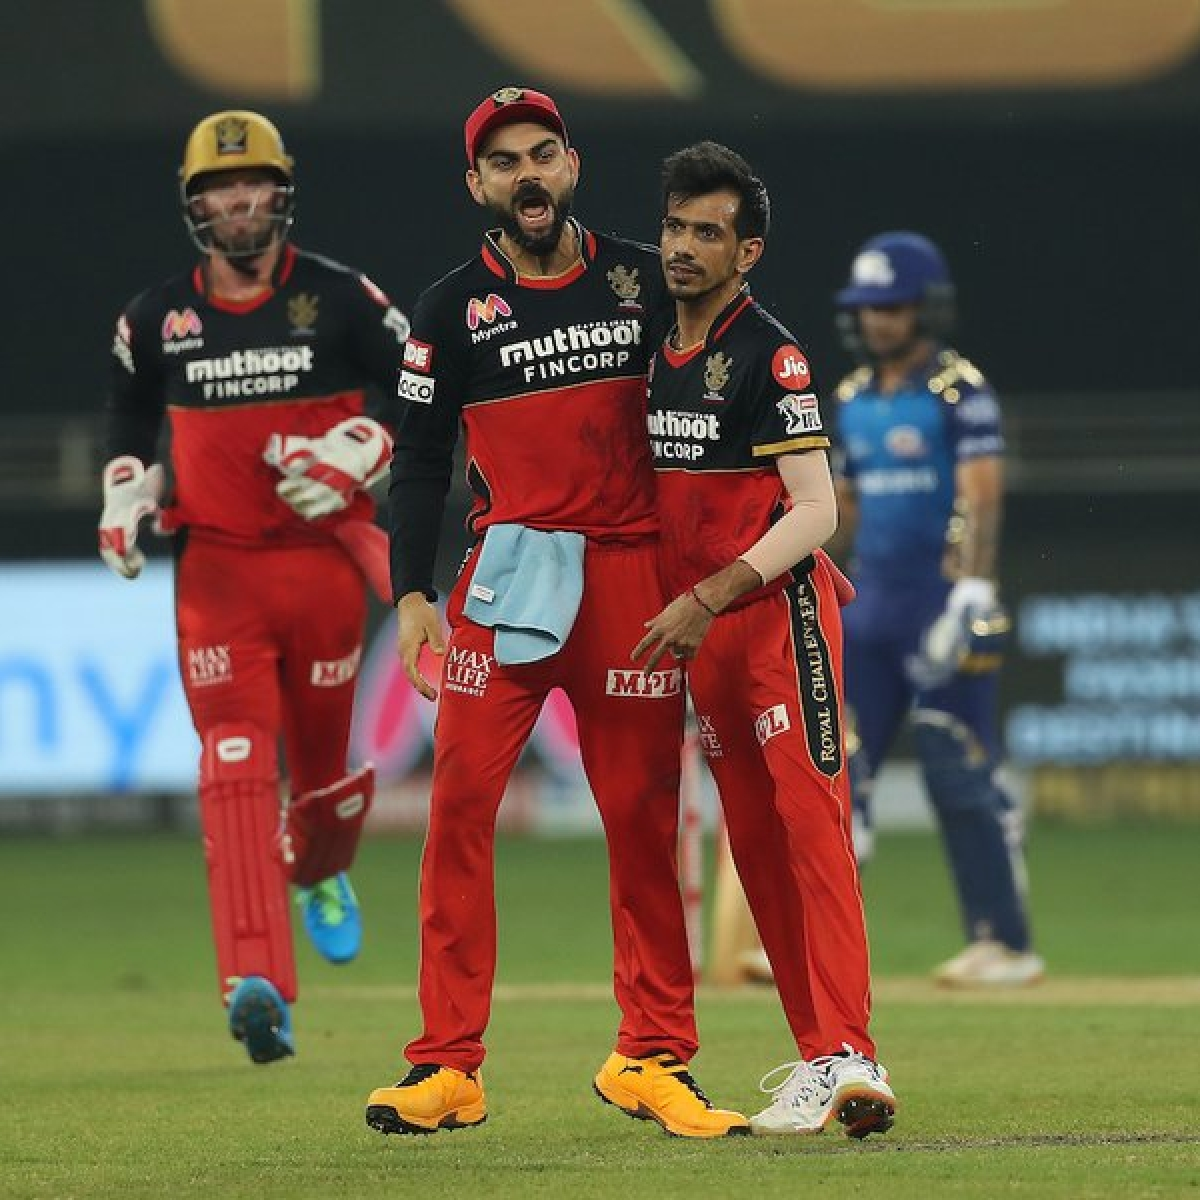 Royal Challengers Bangalore: Here's the complete squad after IPL 2021 auction